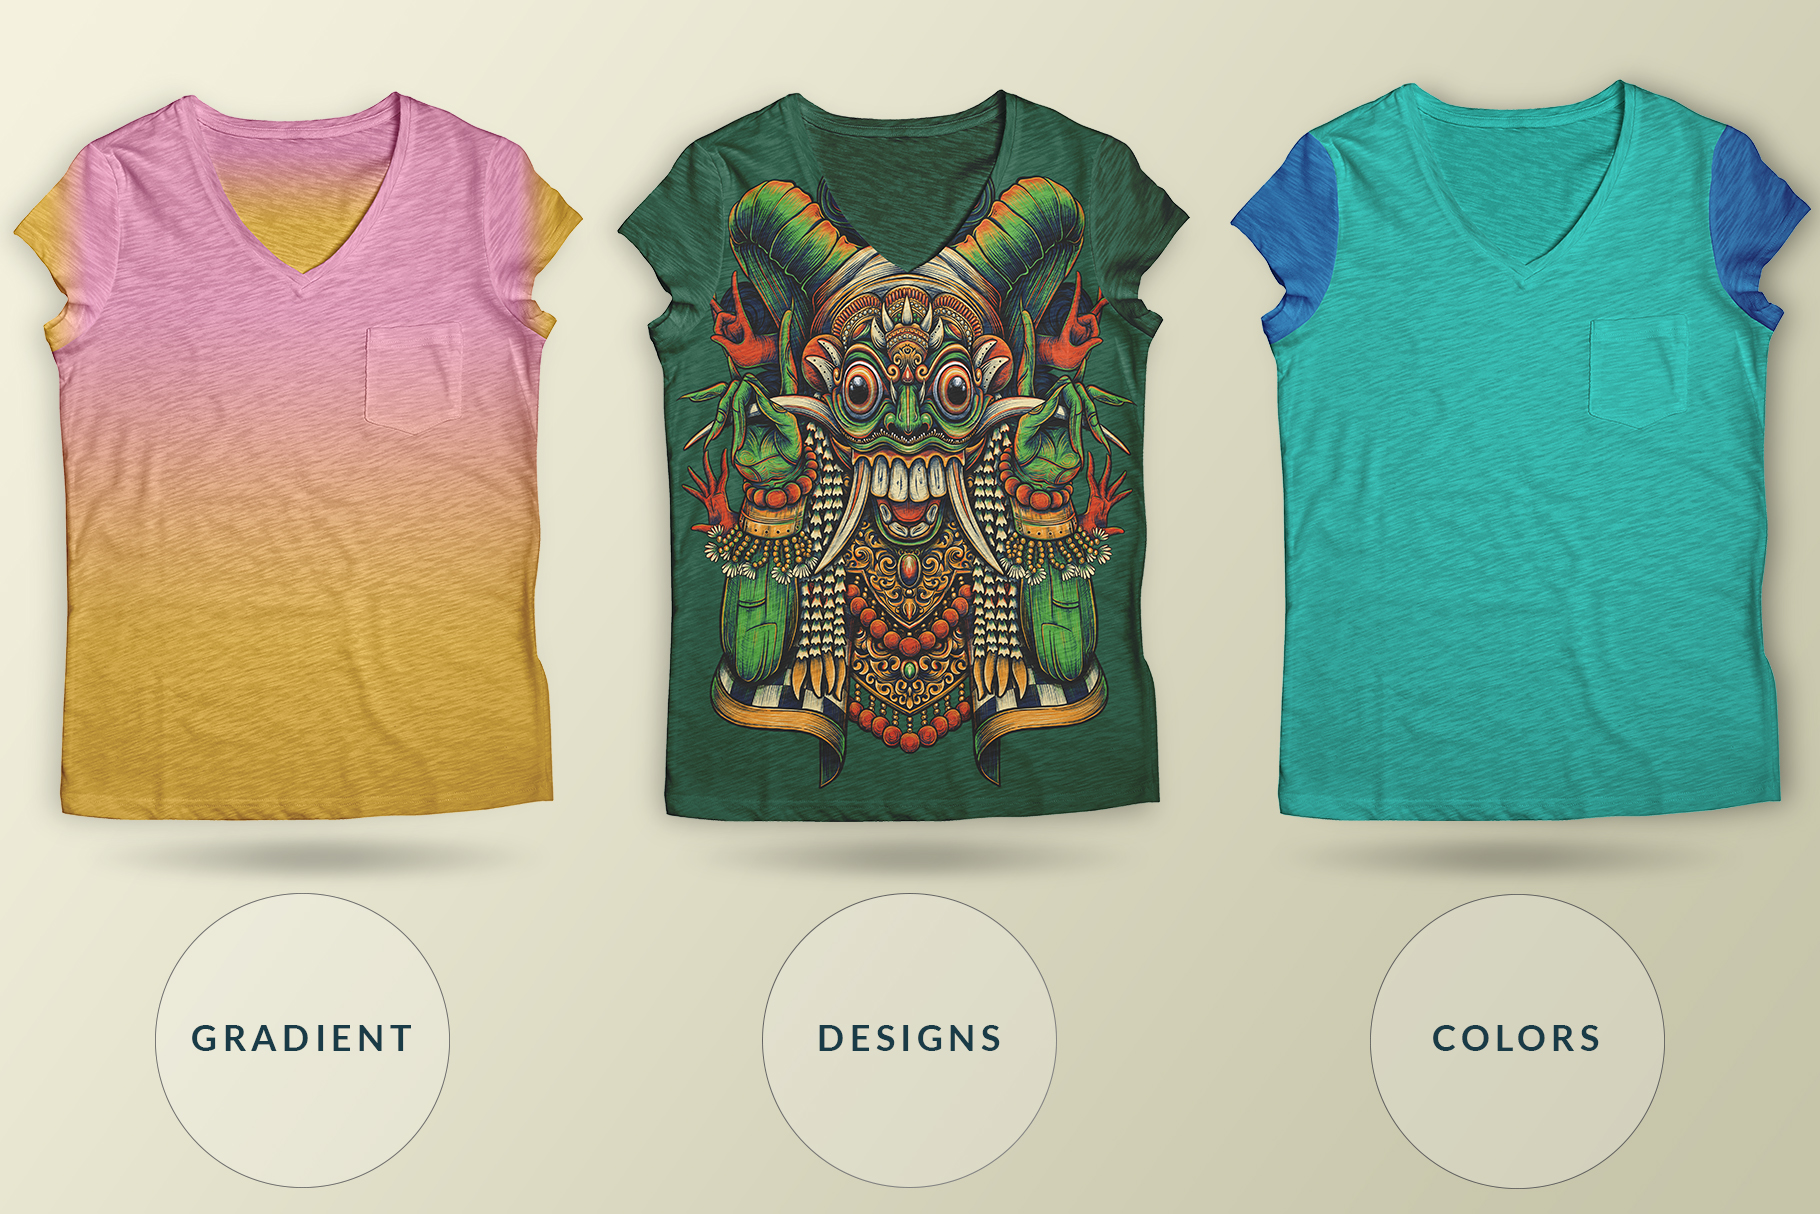 multiple-collar-type-t-shirt-mockup-image-preview-6